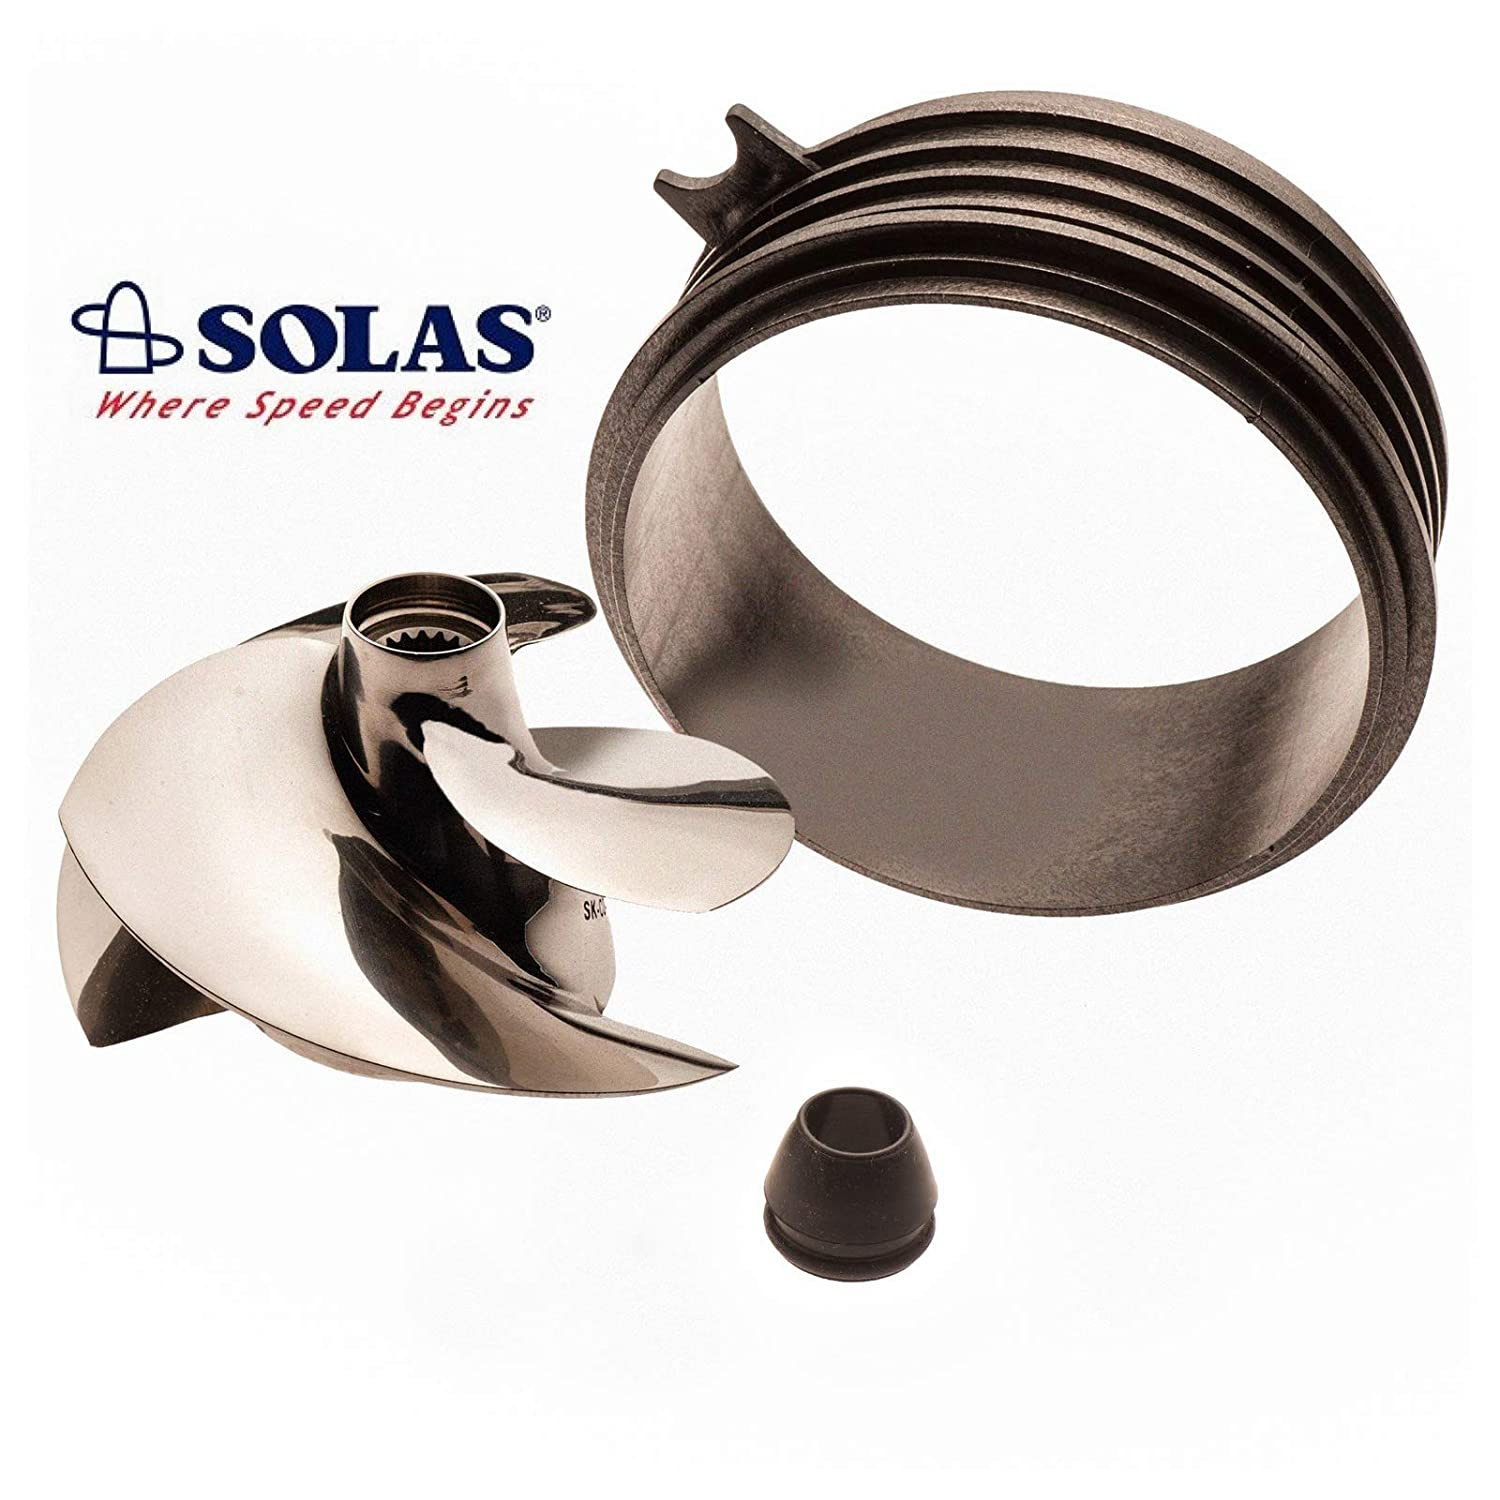 3-Up 14-18 Impeller SK-CD-12//17 with Wear Ring Solas Sea Doo Spark 2-Up 14-17